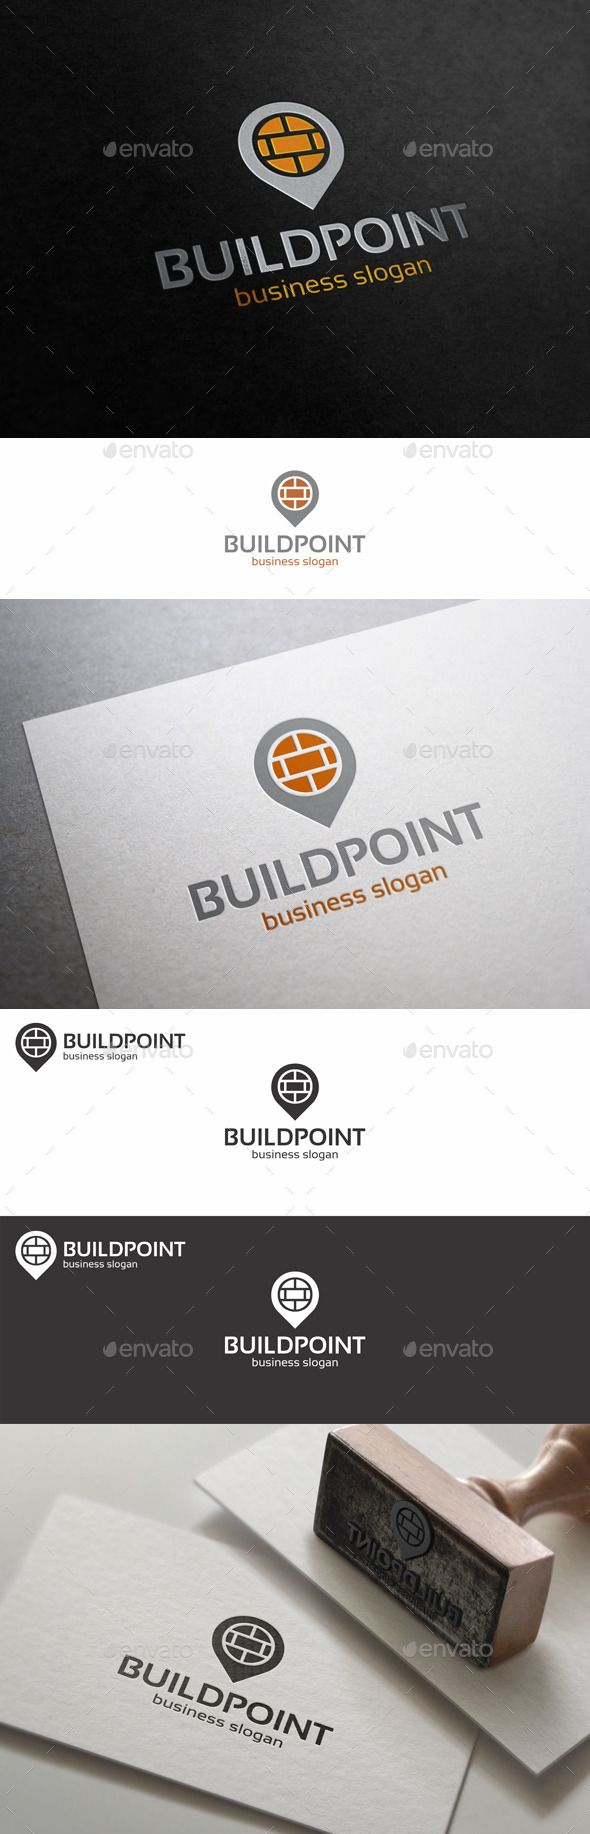 Build Point Place Logo Template Logo's, Huisstijl